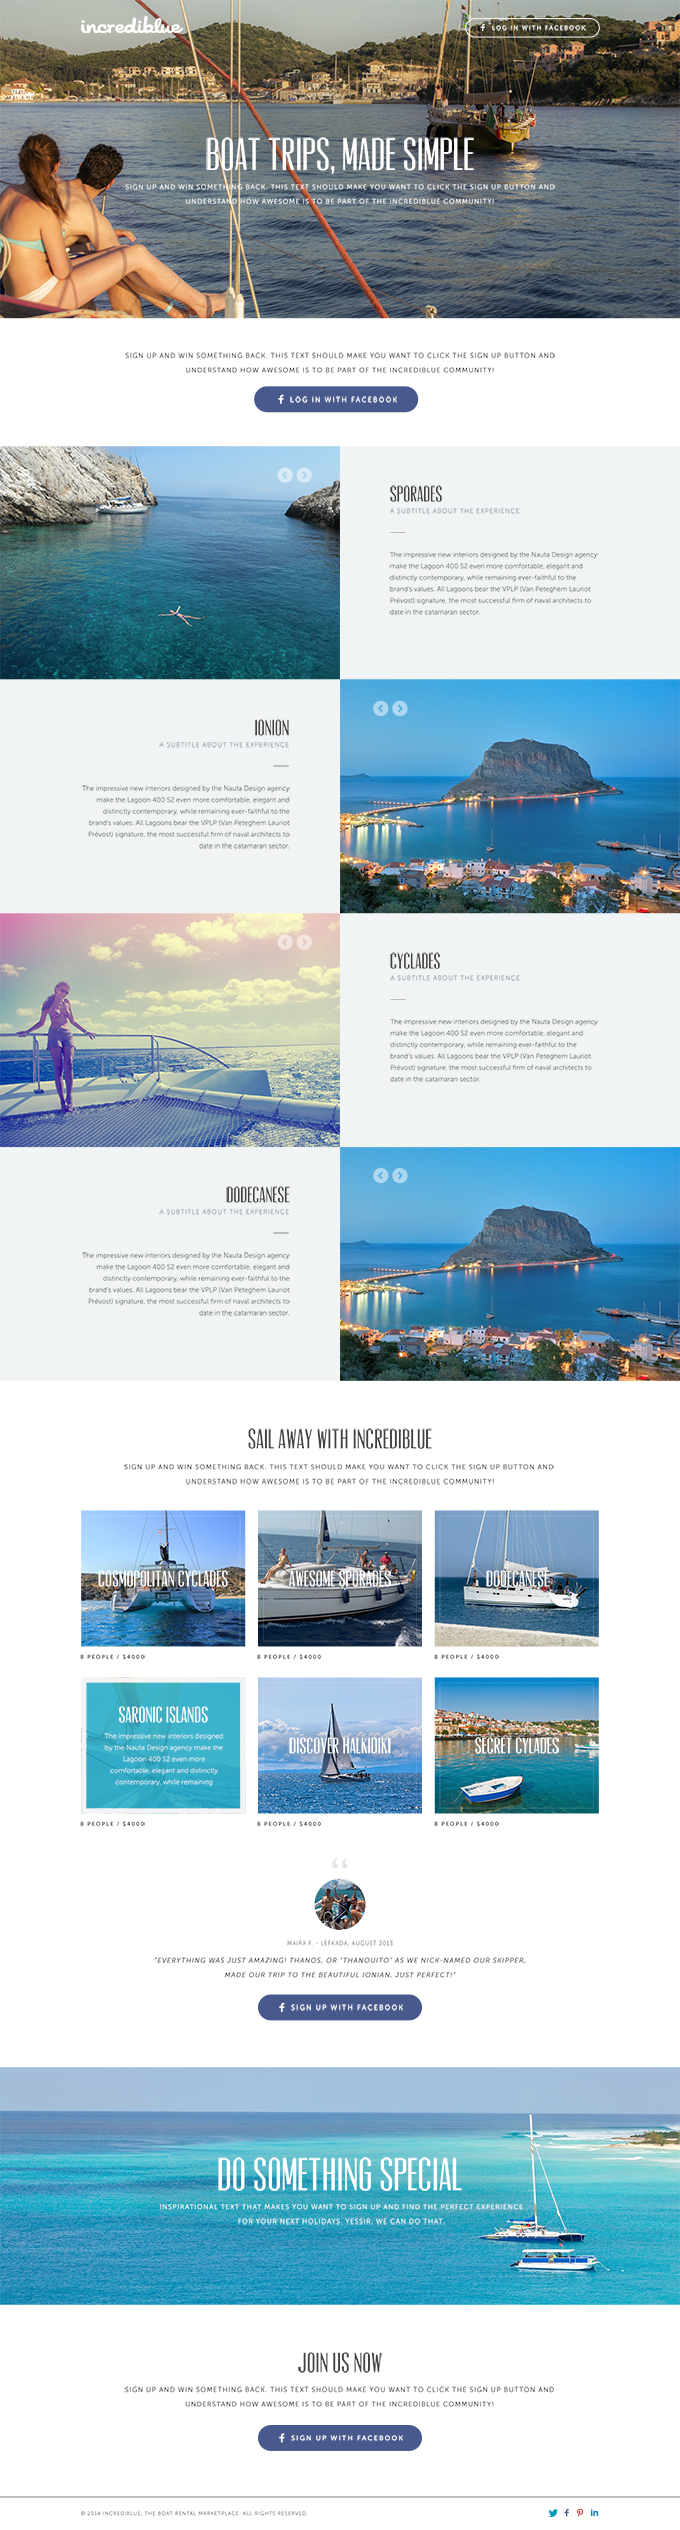 Travel Website Landing Page PSD